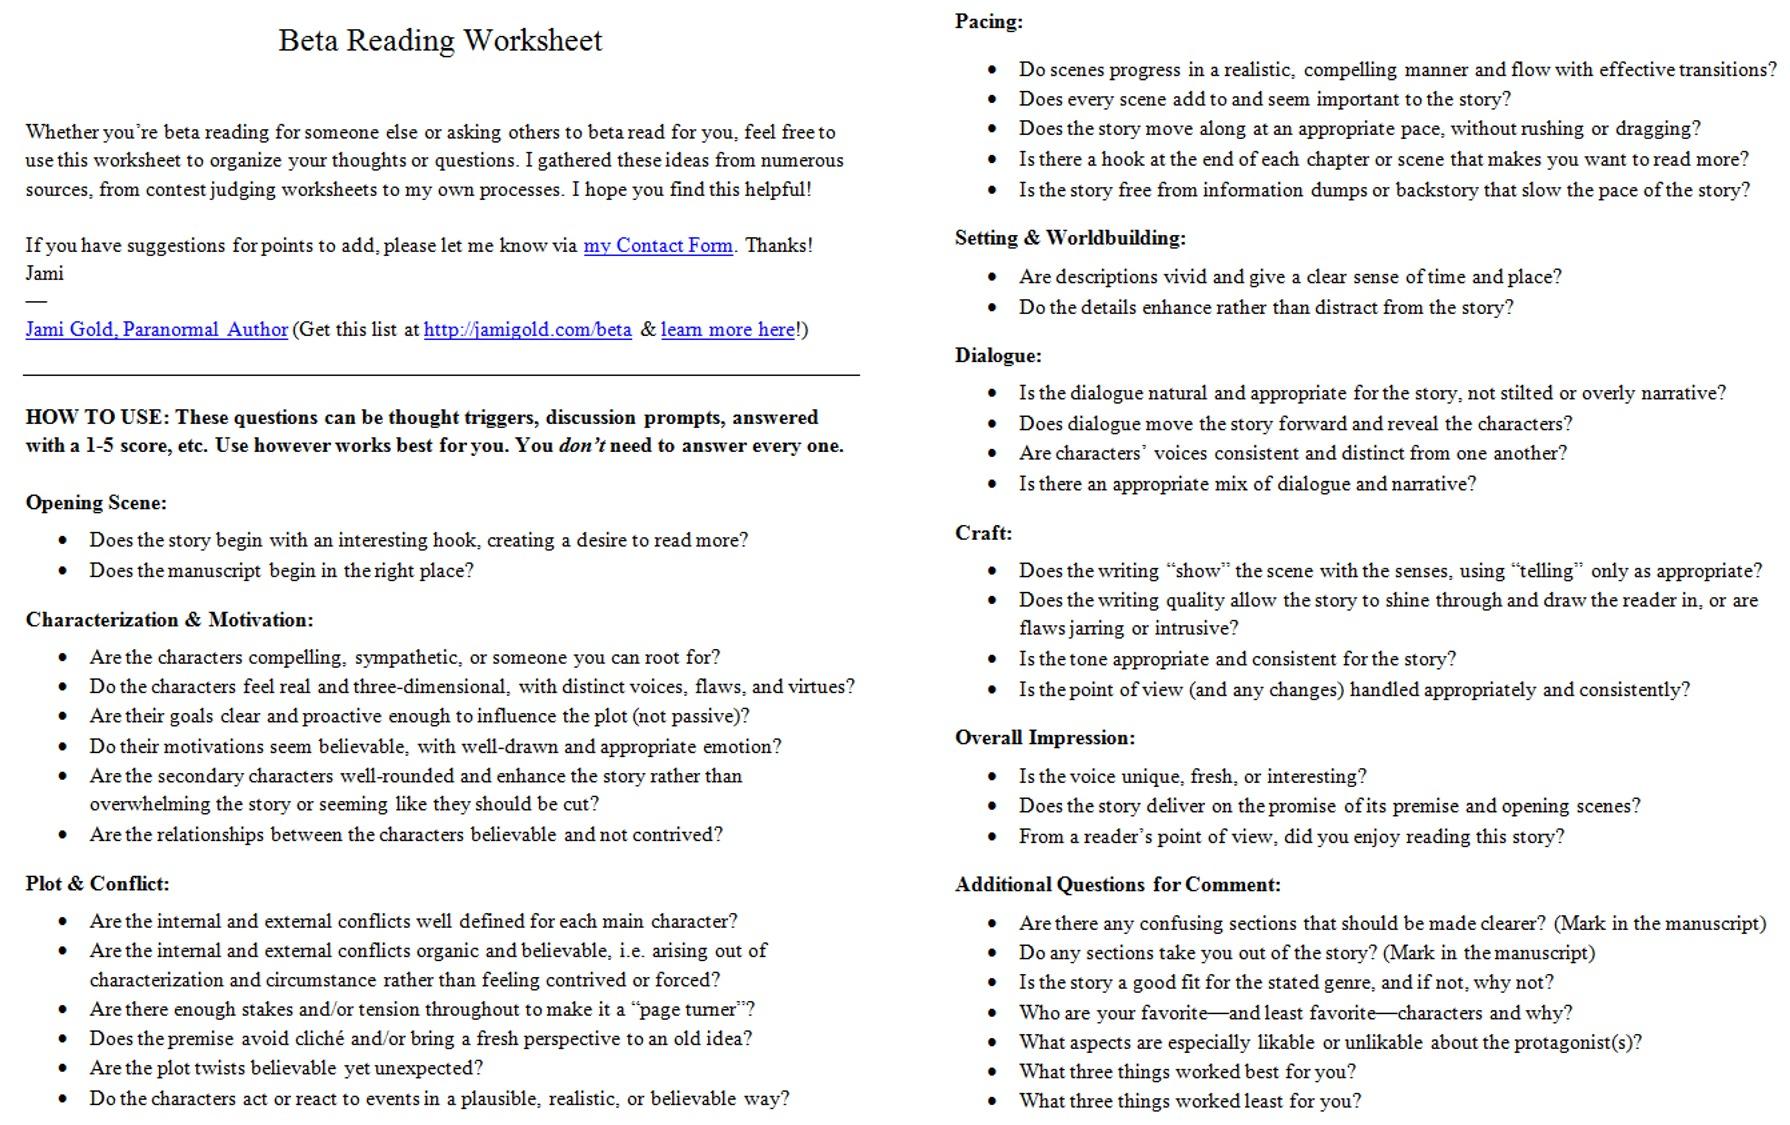 Weirdmailus  Pretty Worksheets For Writers  Jami Gold Paranormal Author With Handsome Screen Shot Of The Twopage Beta Reading Worksheet With Beautiful Printable Homophone Worksheets Also Free Rd Grade Grammar Worksheets In Addition Blends Worksheets First Grade And Fafsa Pre Application Worksheet As Well As Grade  Language Arts Worksheets Additionally Up And Down Worksheet From Jamigoldcom With Weirdmailus  Handsome Worksheets For Writers  Jami Gold Paranormal Author With Beautiful Screen Shot Of The Twopage Beta Reading Worksheet And Pretty Printable Homophone Worksheets Also Free Rd Grade Grammar Worksheets In Addition Blends Worksheets First Grade From Jamigoldcom